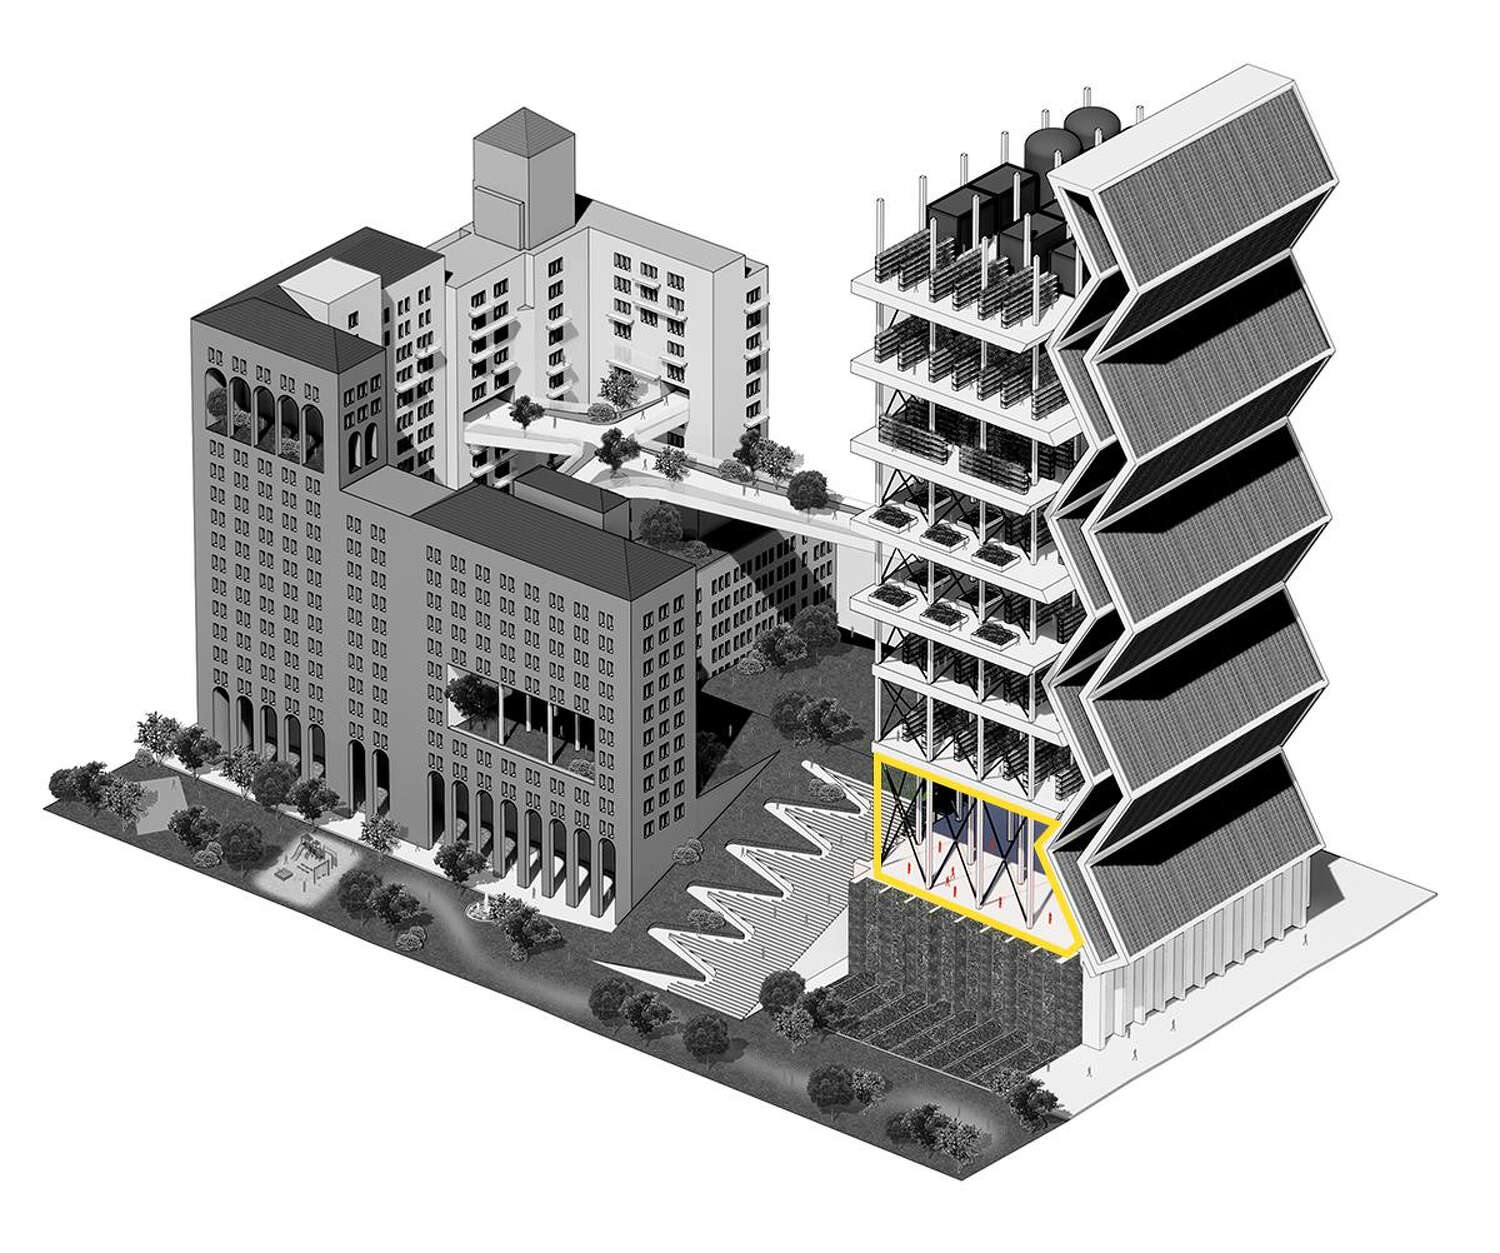 The ground floor of the building in the front of the rendering is highlighted.